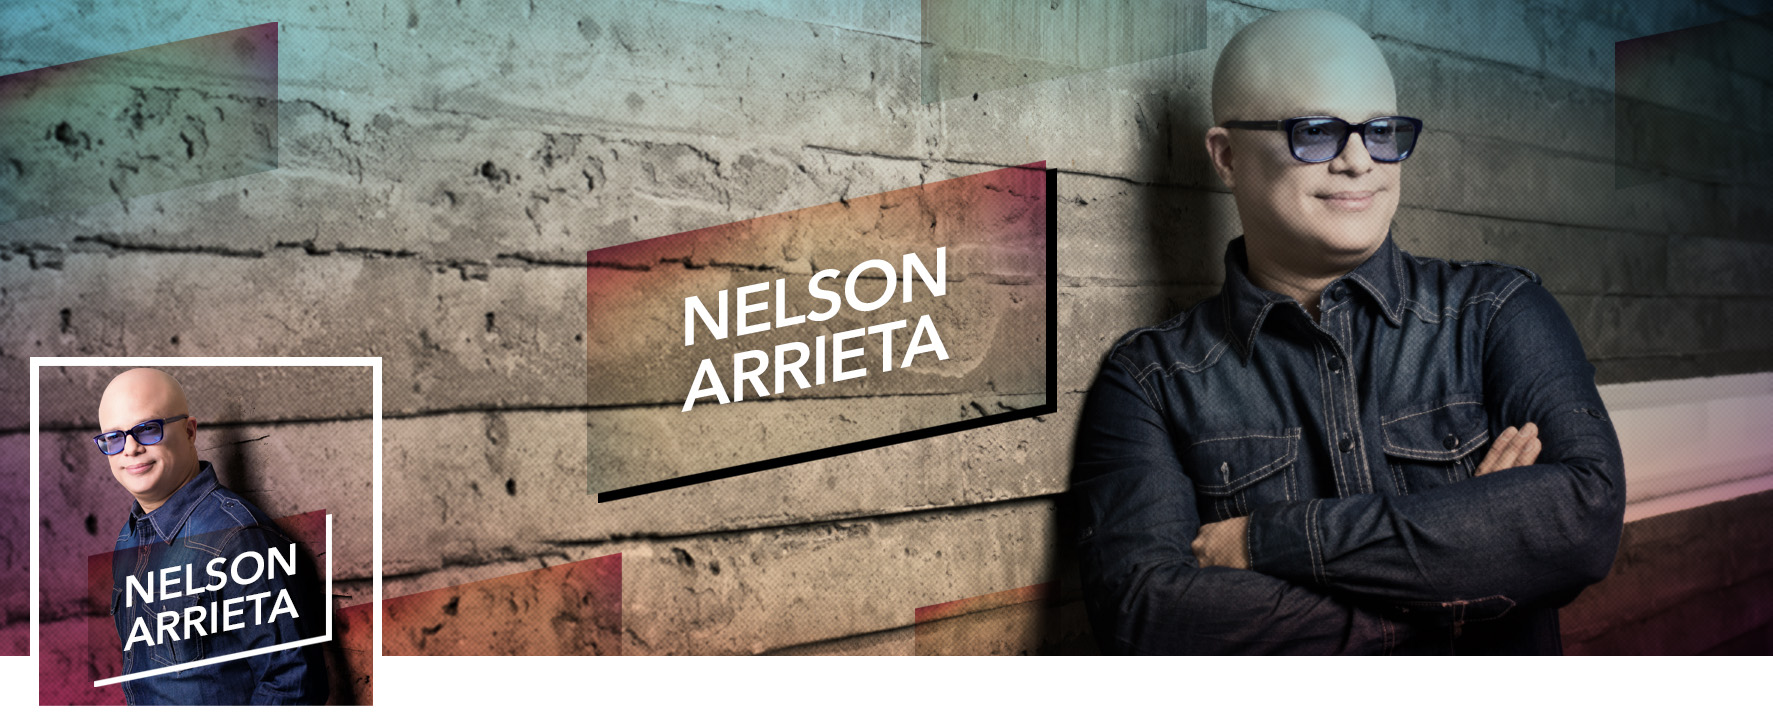 nelson arrieta estereo marketing